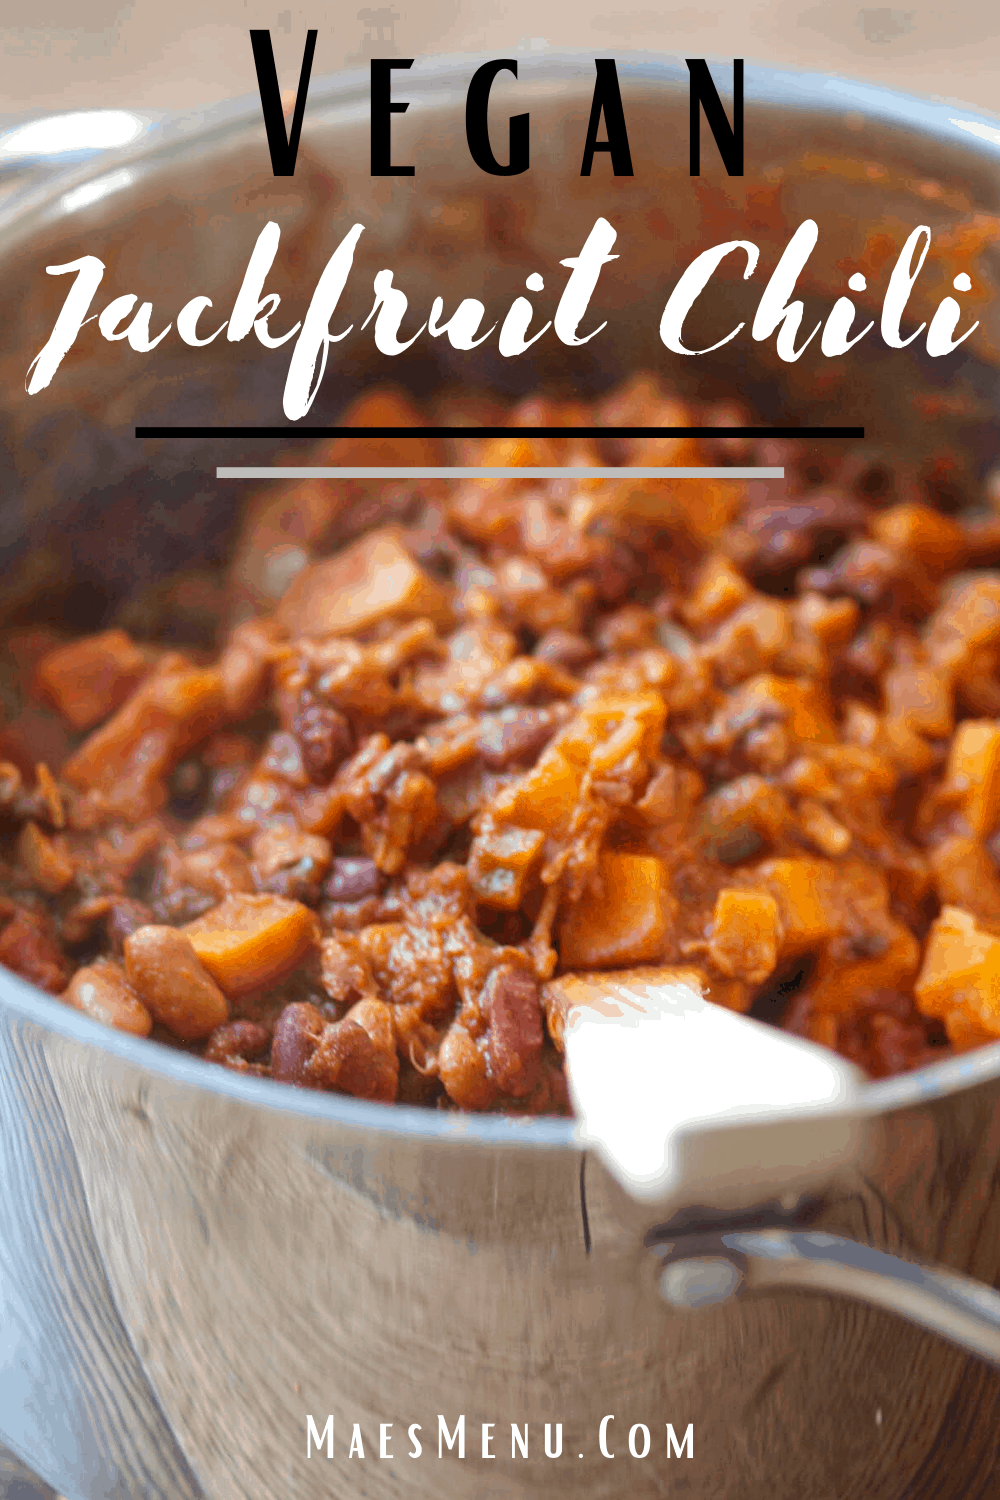 A pinterest pin for vegan jackfruit chili with a picture of a pot of jackfruit chili.